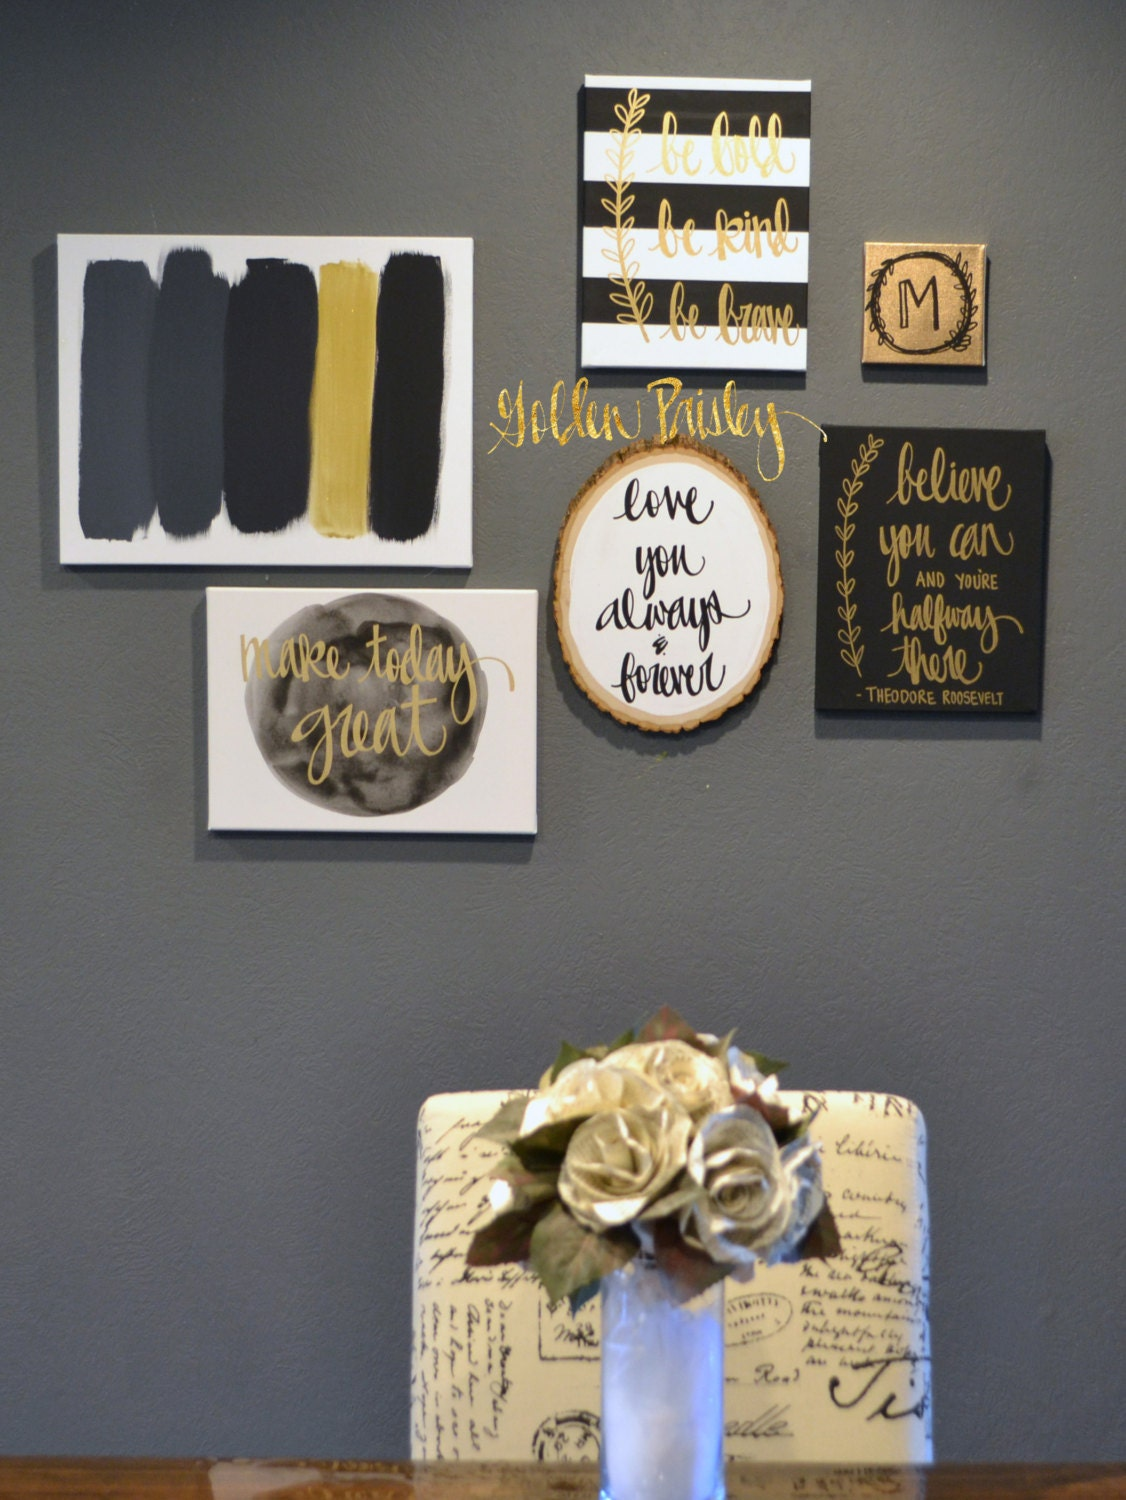 Complete gallery wall 6 piece set black white gold art set - White and gold room decor ...